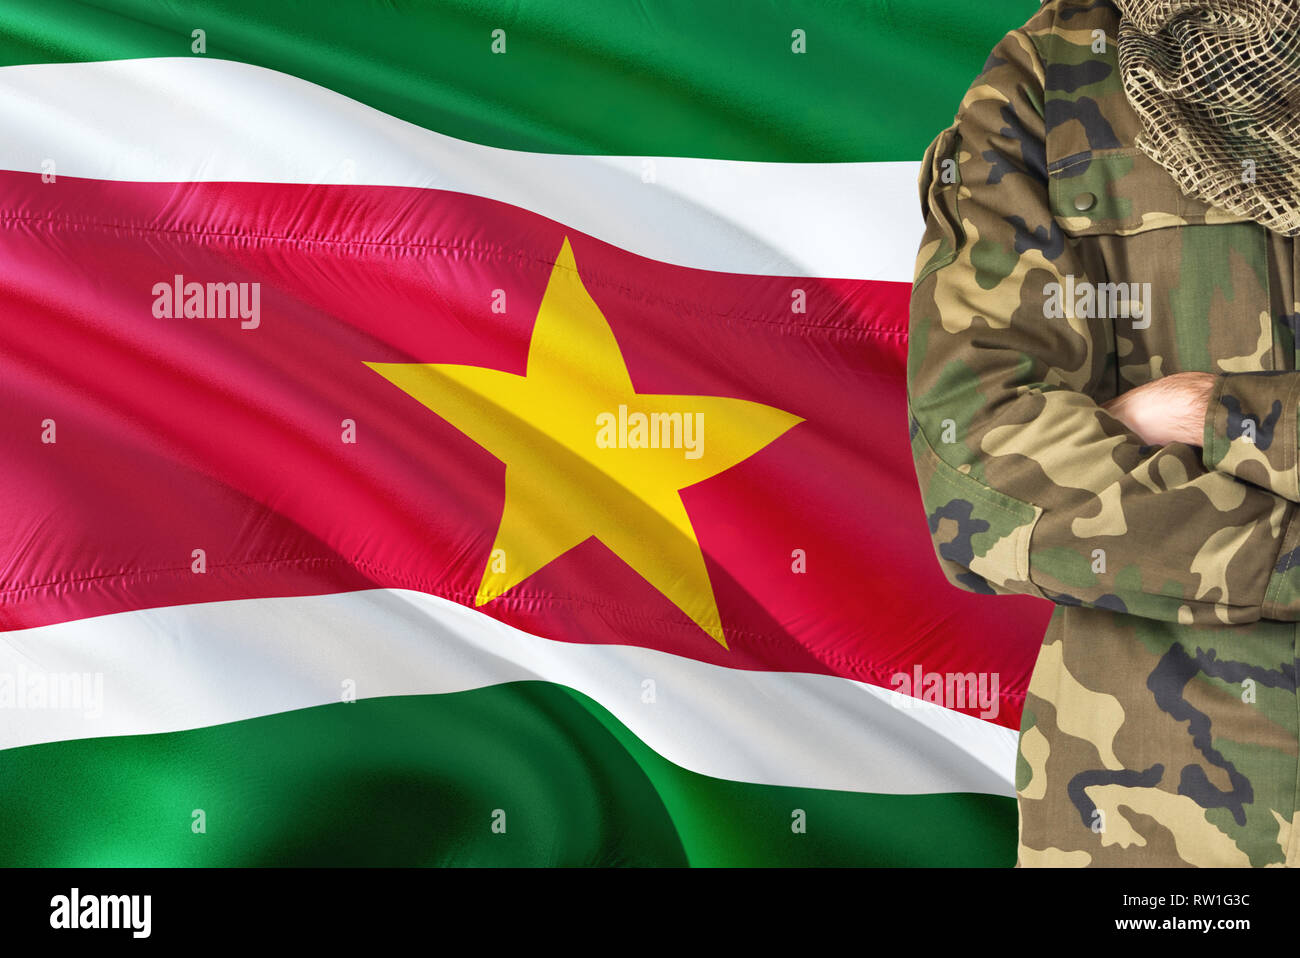 Crossed arms Surinamese soldier with national waving flag on background - Suriname Military theme. - Stock Image